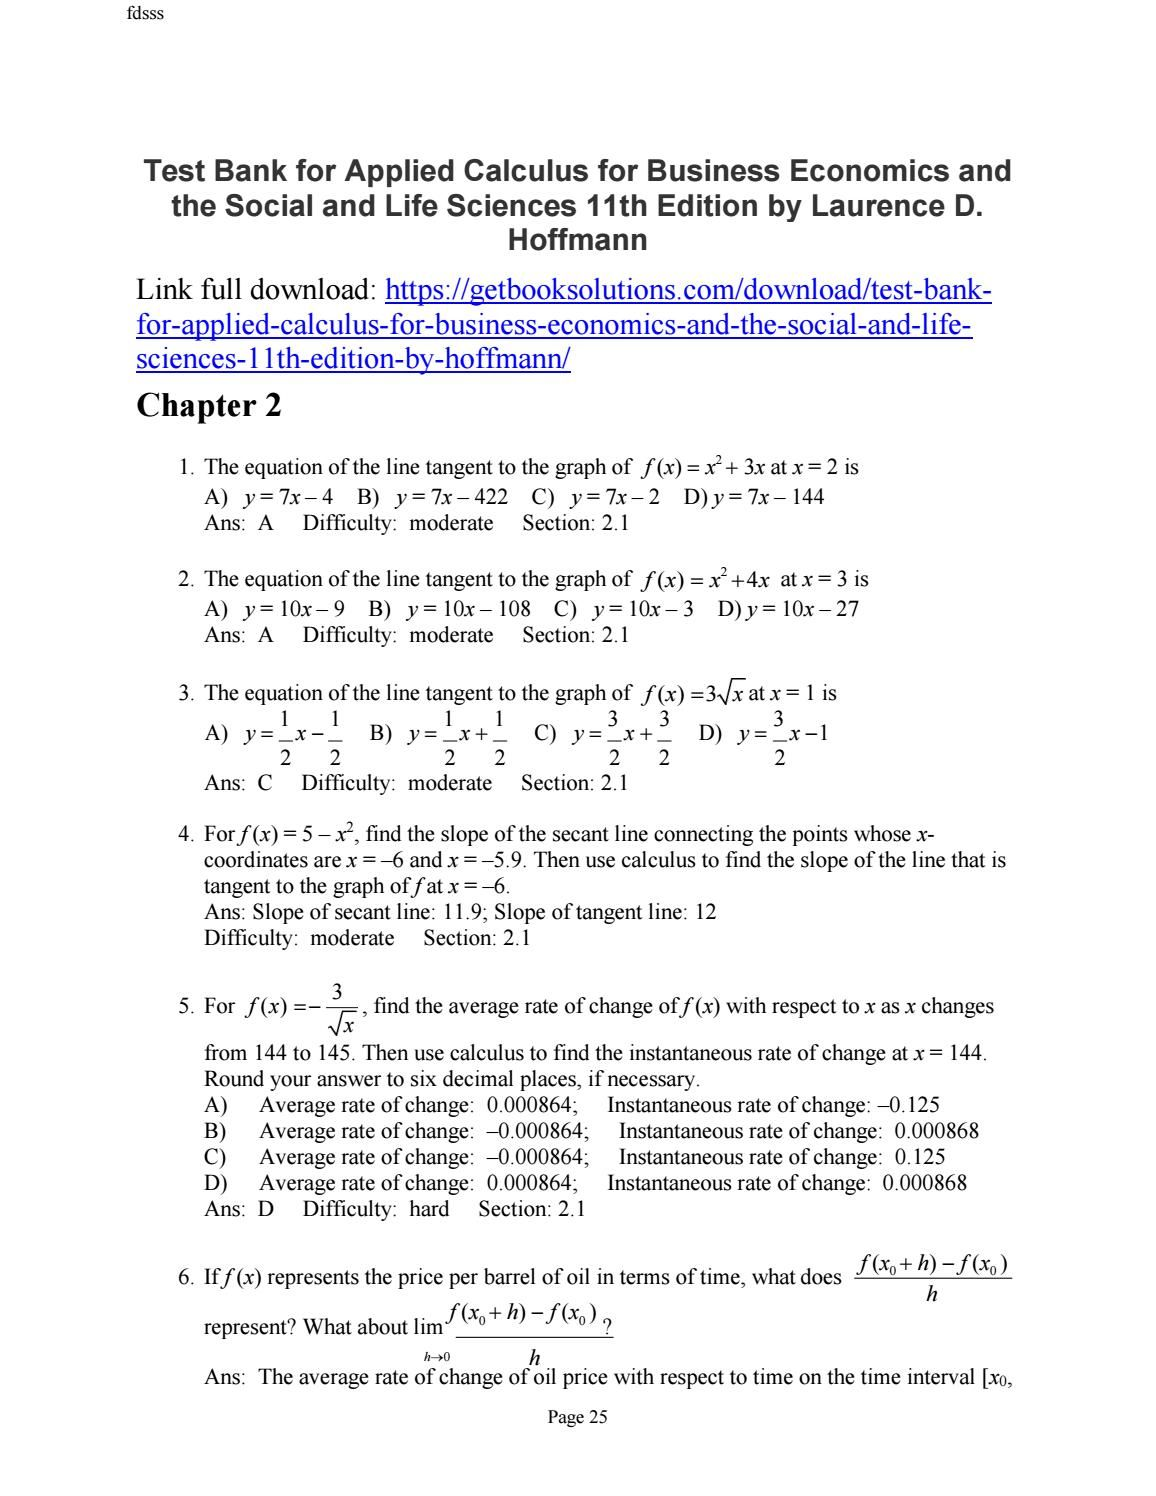 Test bank applied calculus business economics the social life test bank applied calculus business economics the social life sciences 11th edition hoffmann fandeluxe Image collections